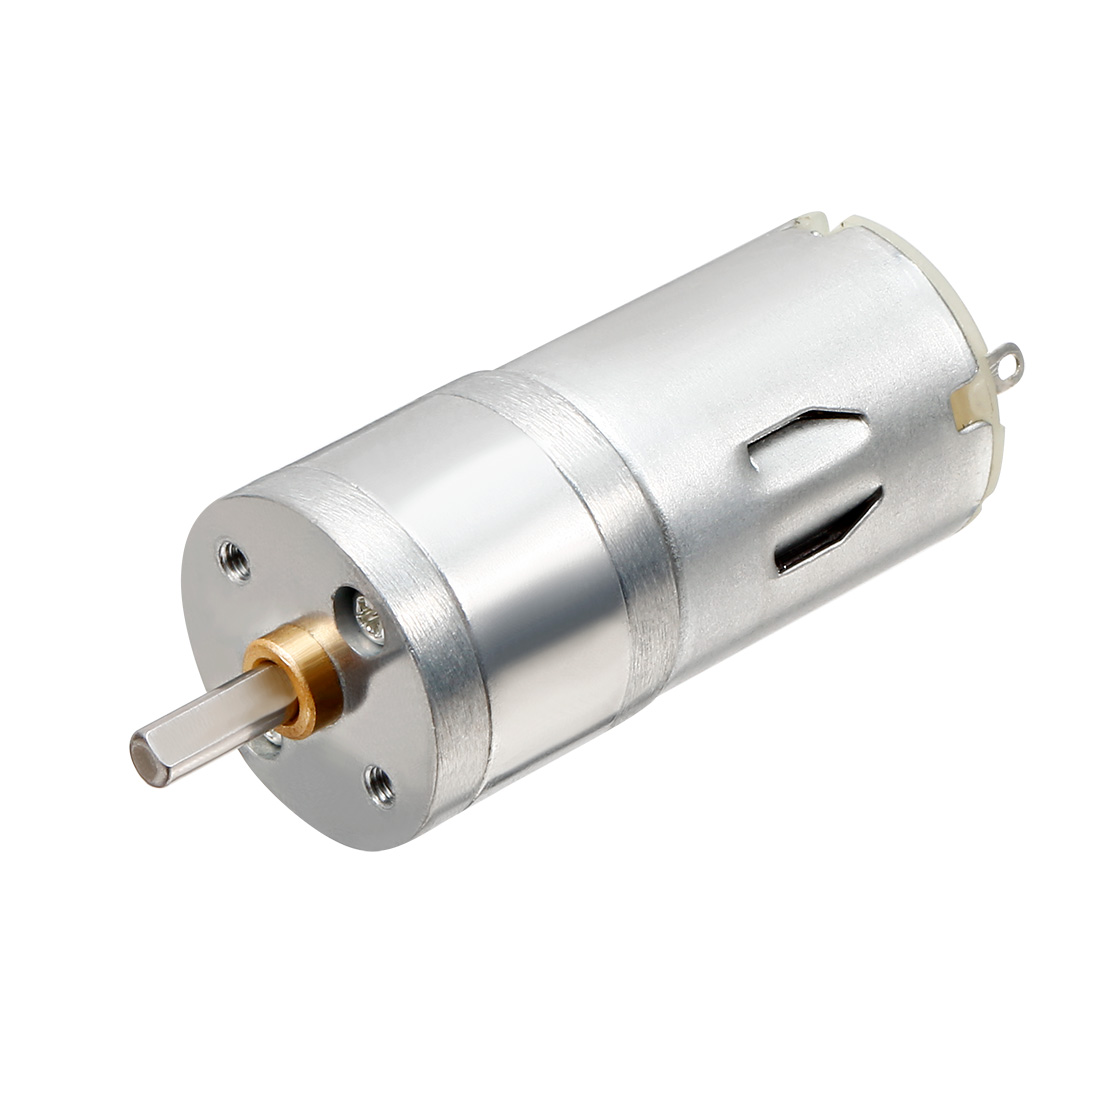 DC12V 40-50mA 1500RPM Electric DC Geared Motor Replacement